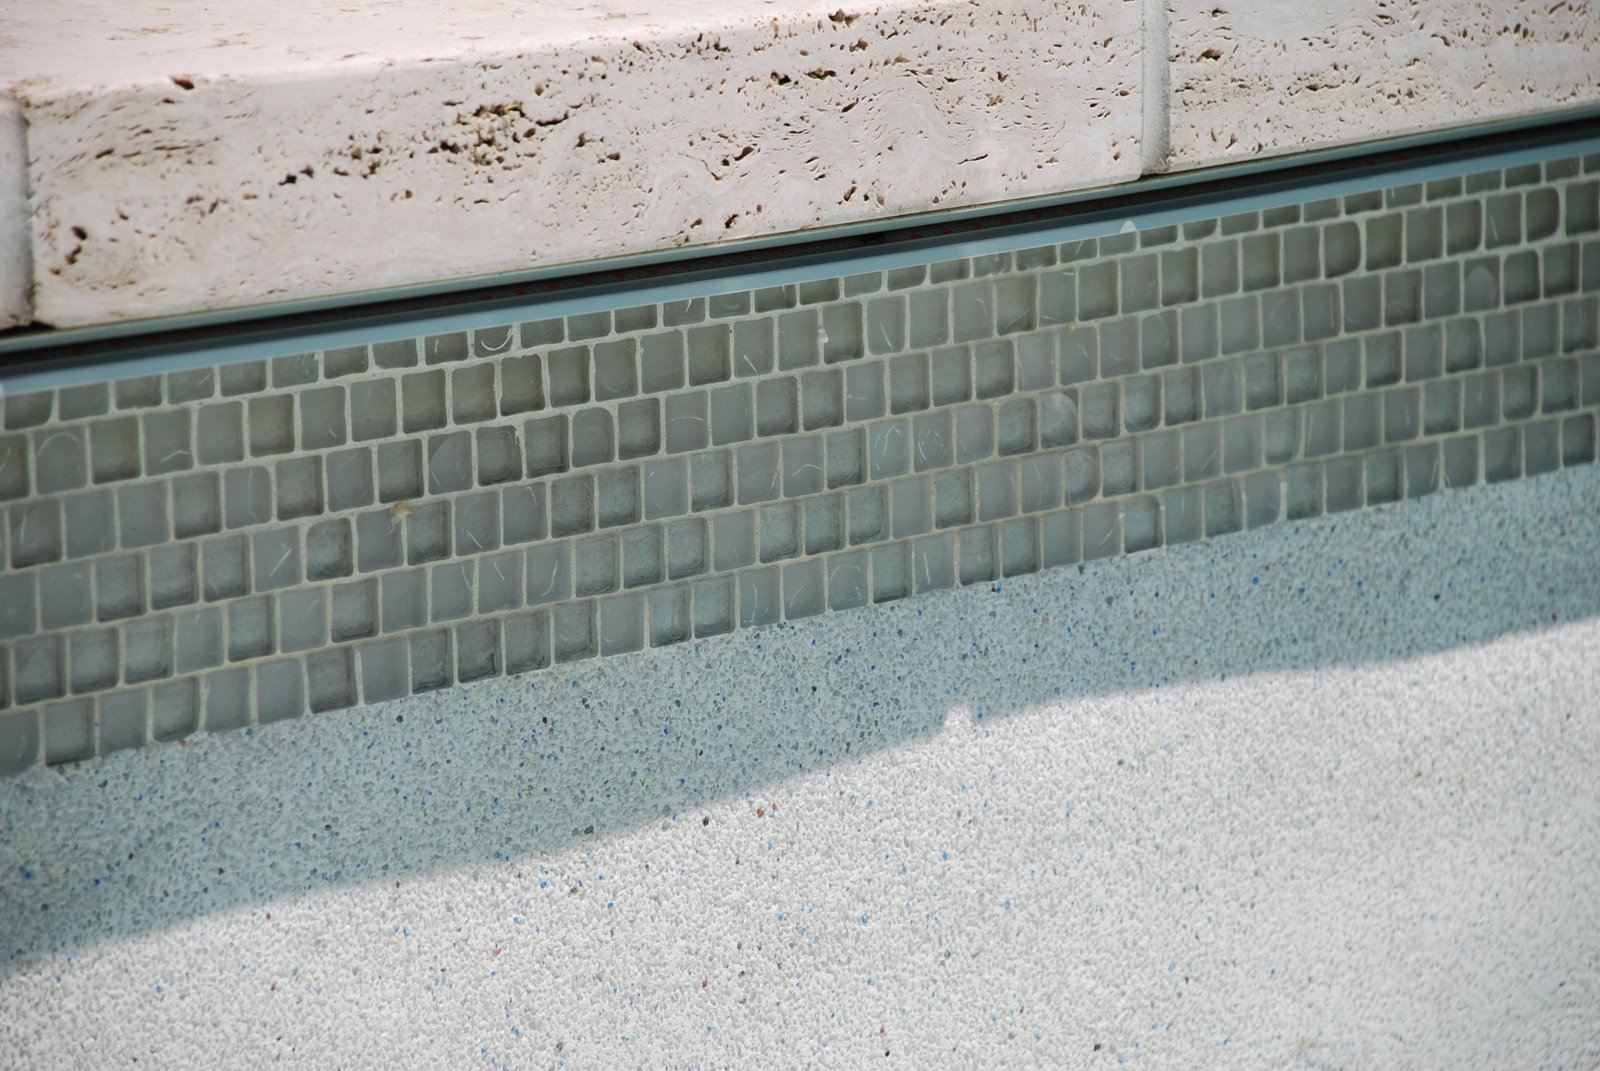 Failure of Glass Mosaic Tile | Aquatic Technology Pool & Spa ...